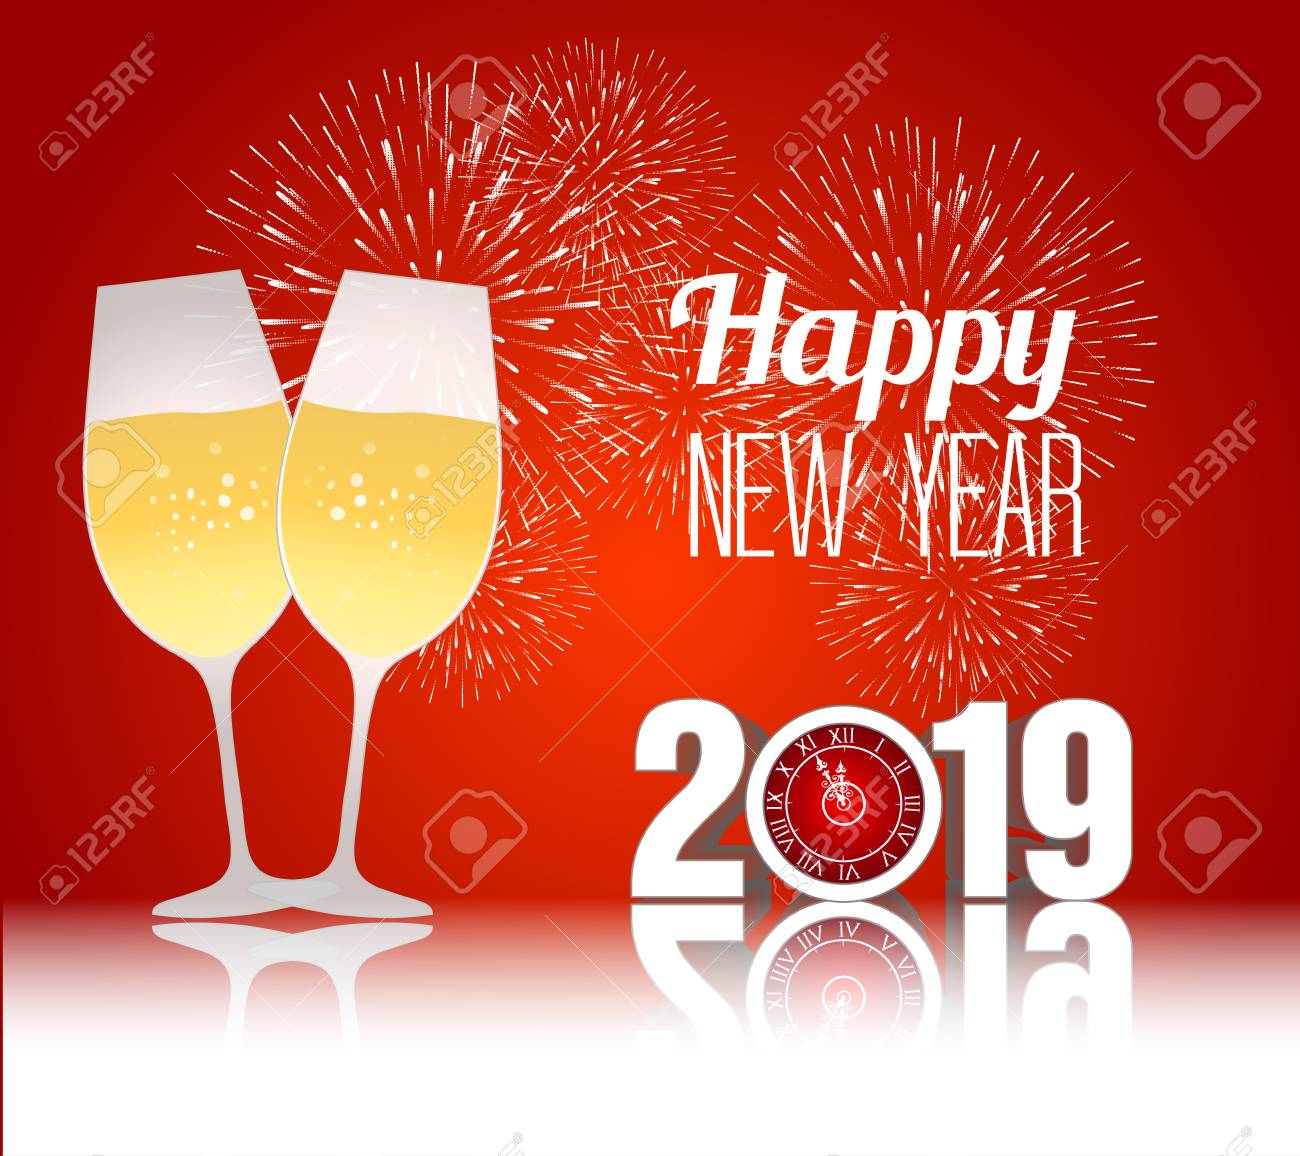 happy new year 2019 template vector illustration with champagne glasses stock vector 98015164